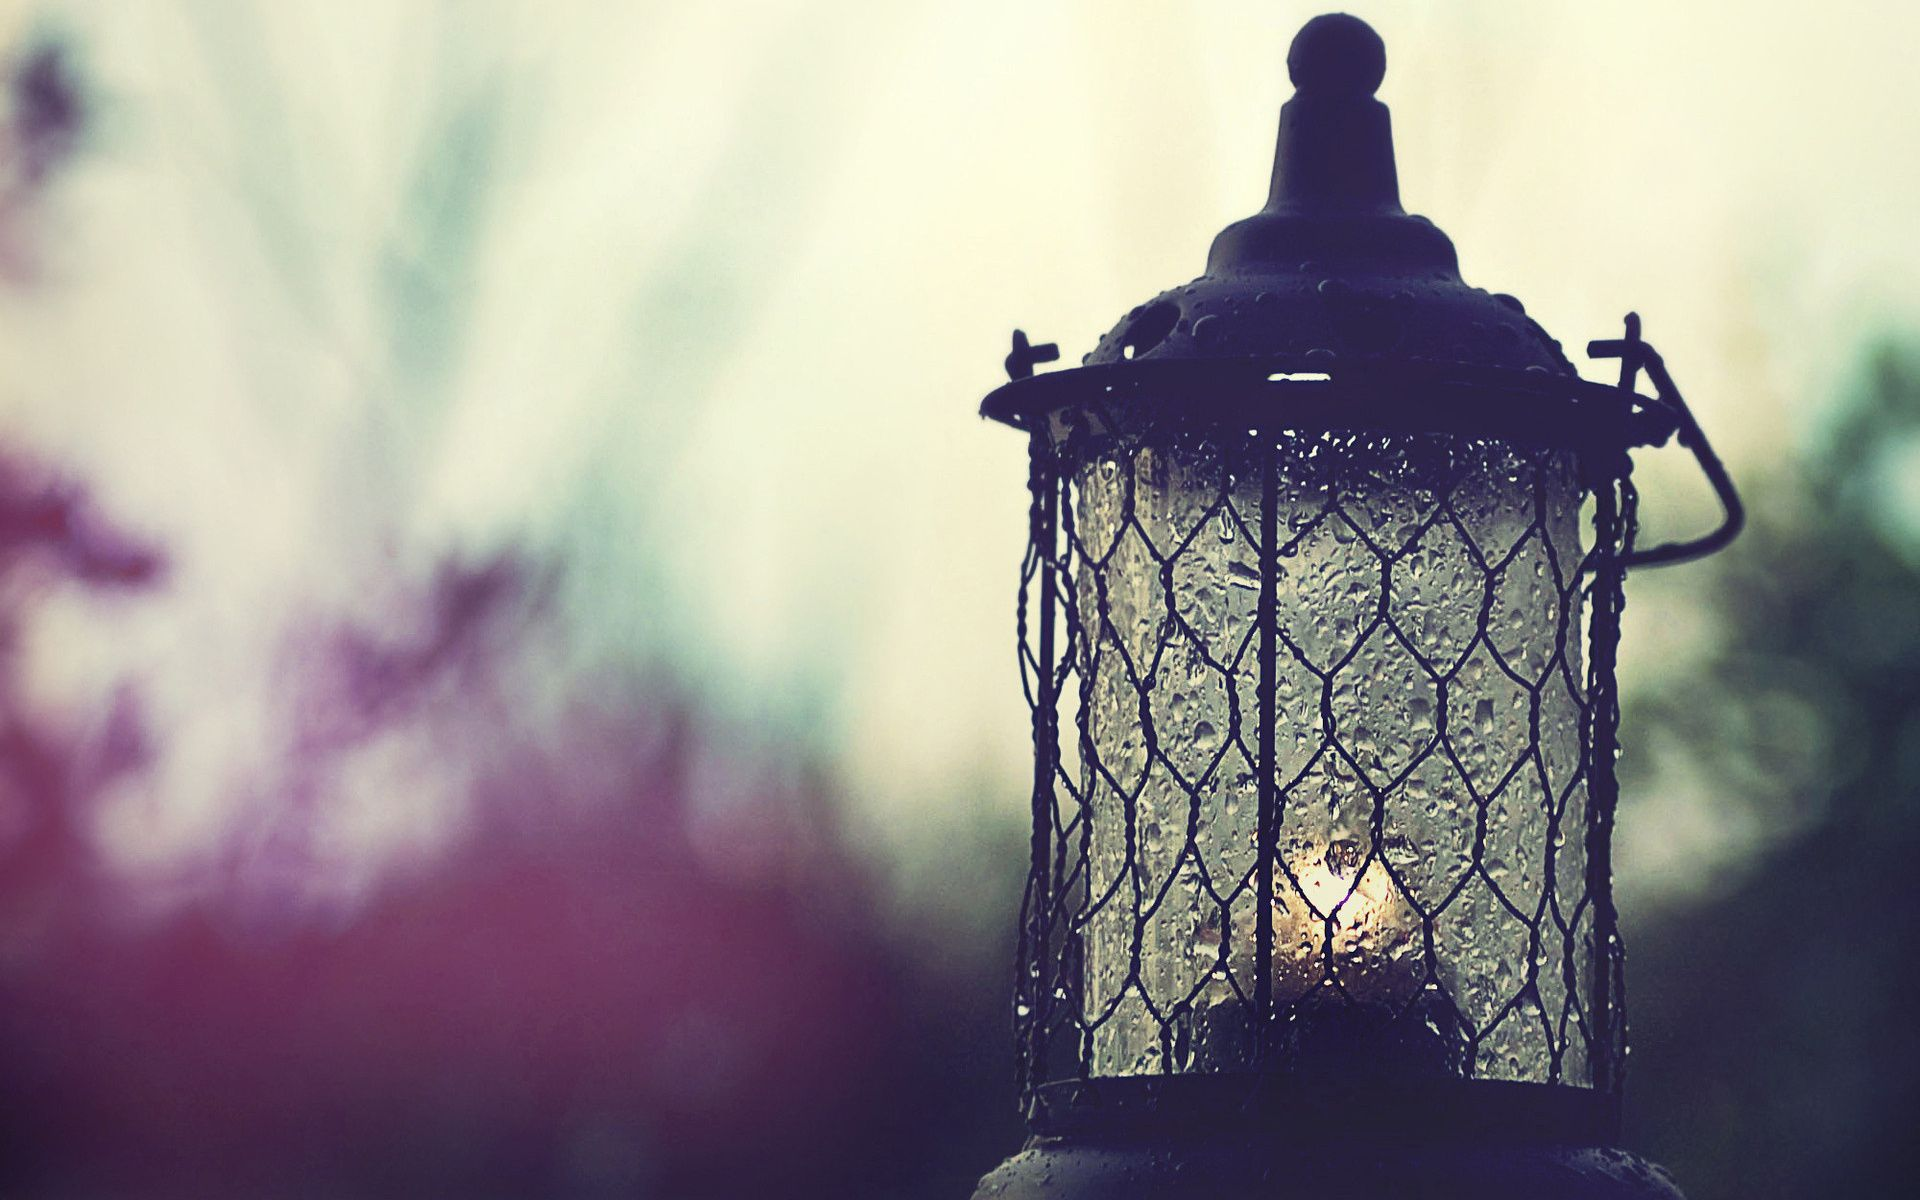 Lantern light drops candle | Lanterns~posts~lights~Silver beauty and ... for Lantern Lights Wallpaper  192sfw